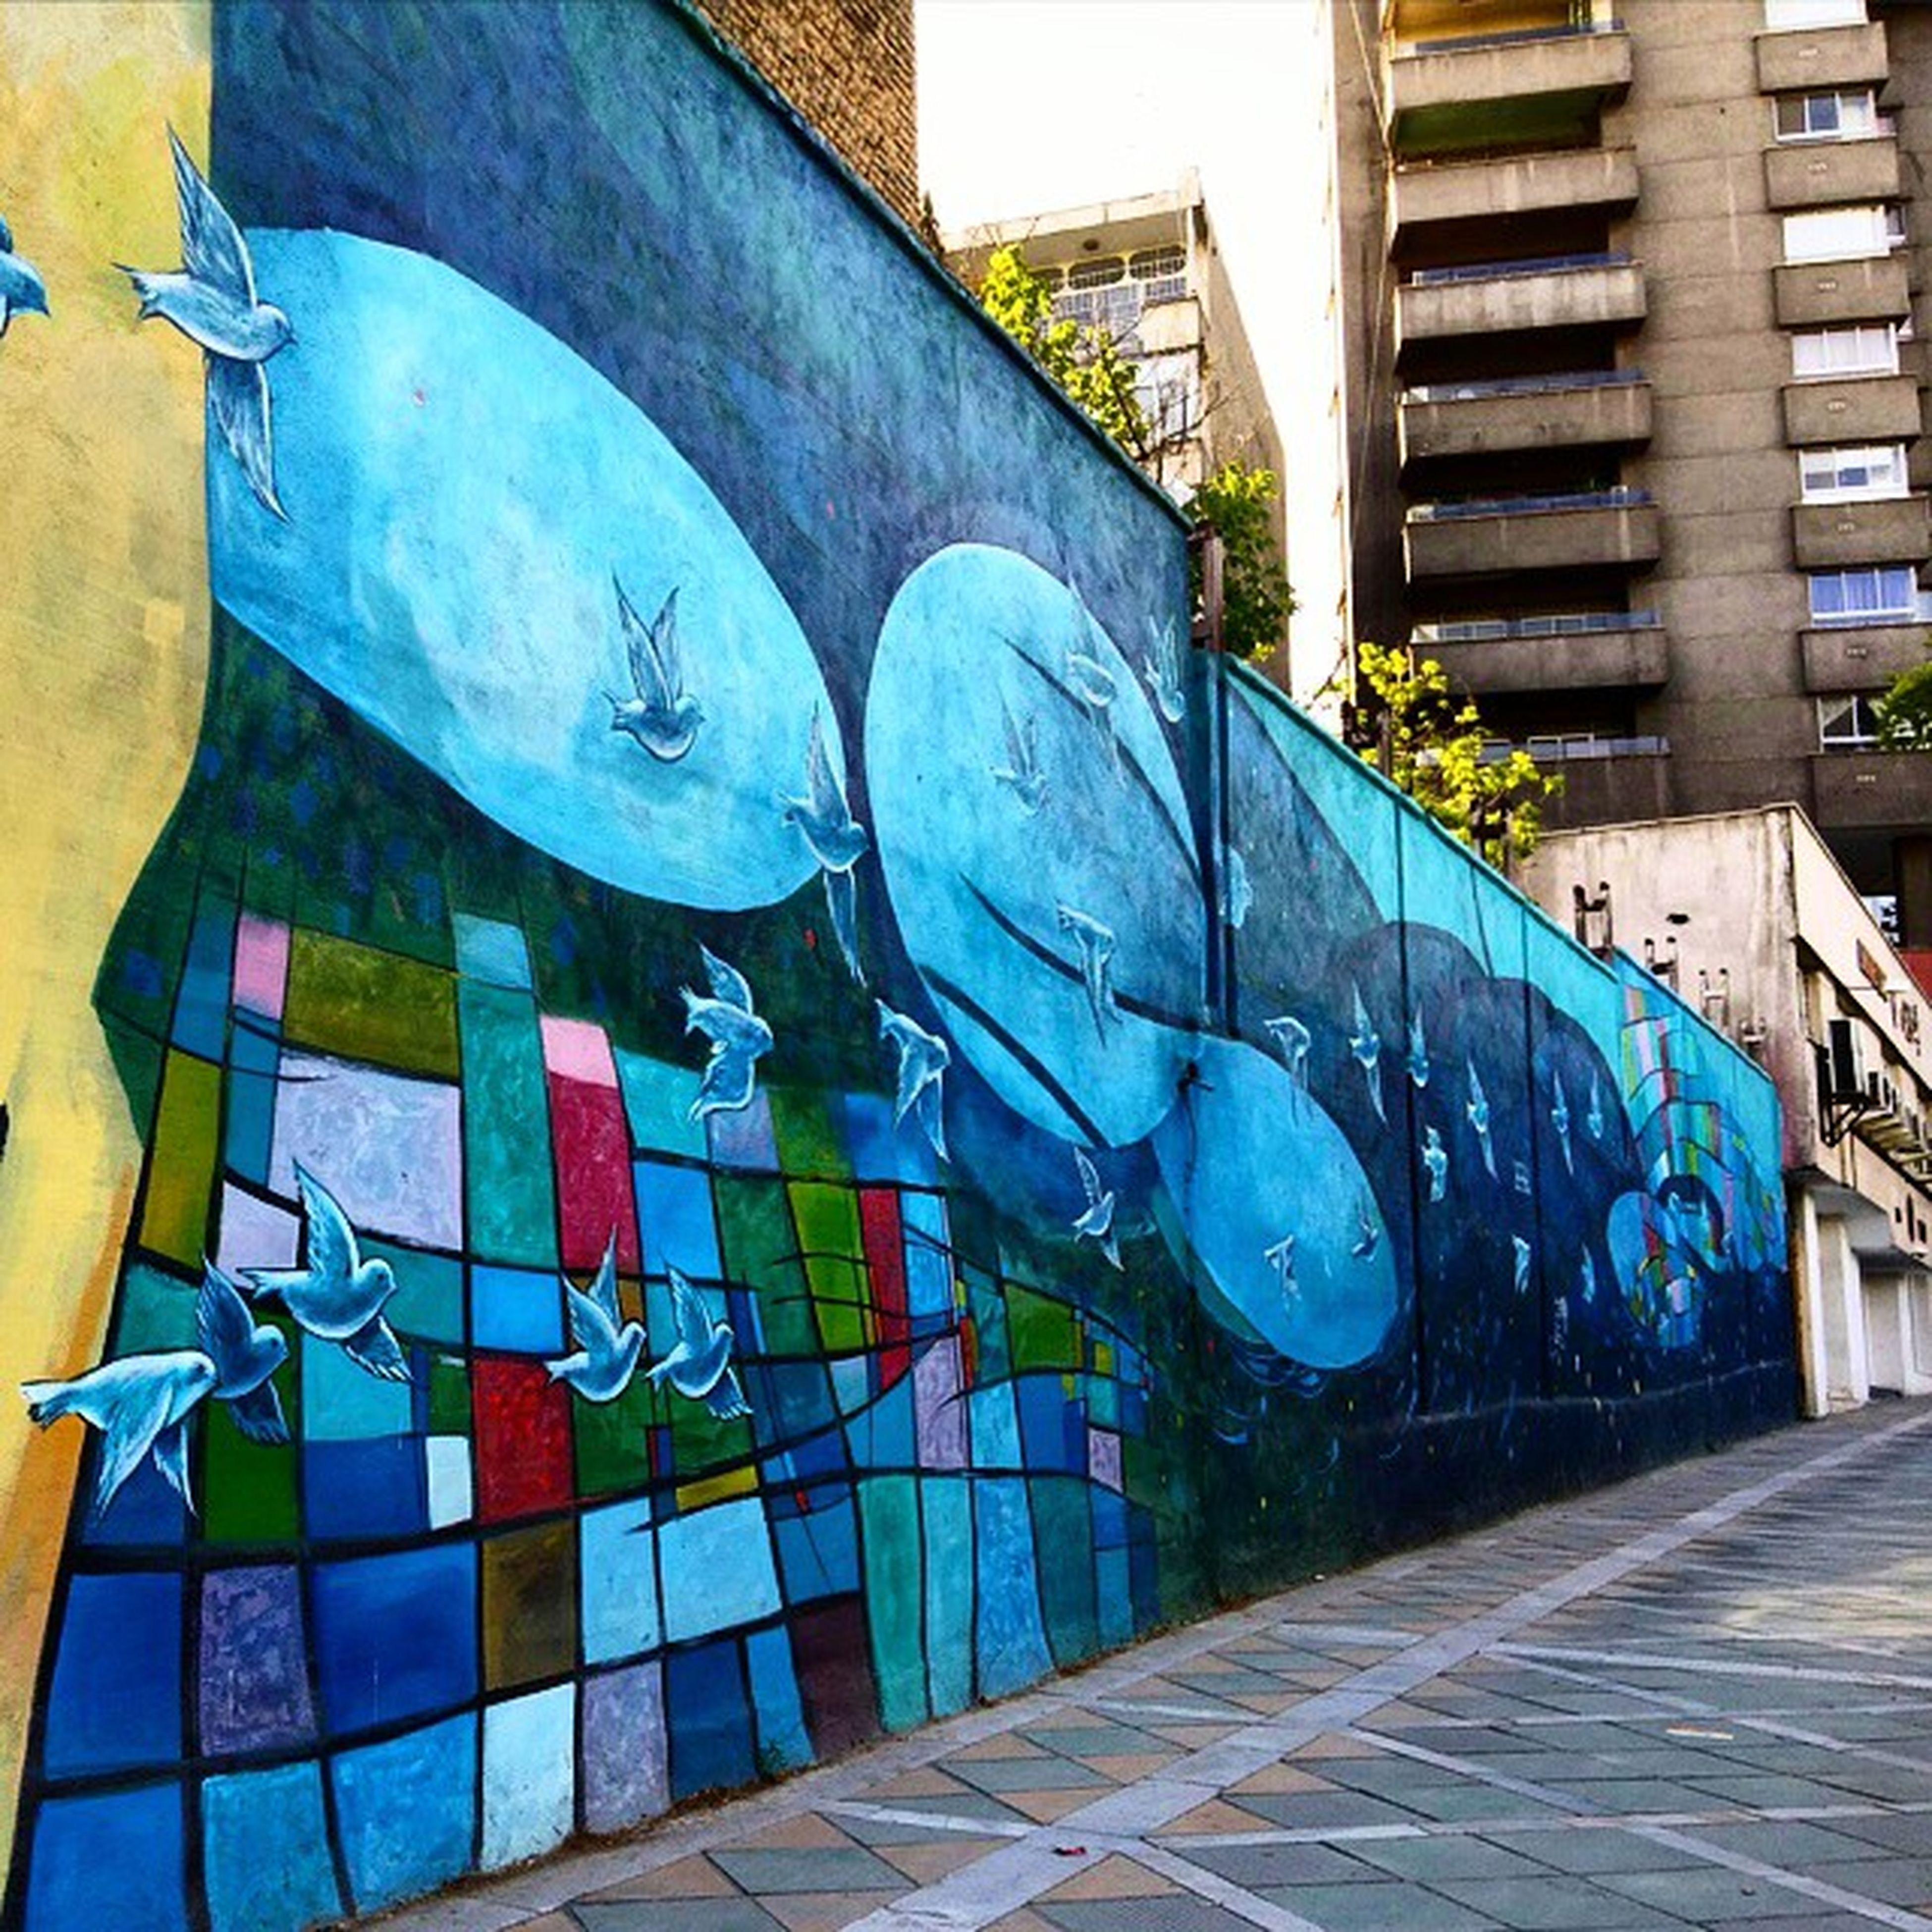 graffiti, art, built structure, art and craft, architecture, creativity, building exterior, multi colored, wall - building feature, blue, day, no people, street, outdoors, sidewalk, wall, empty, sunlight, street art, in a row